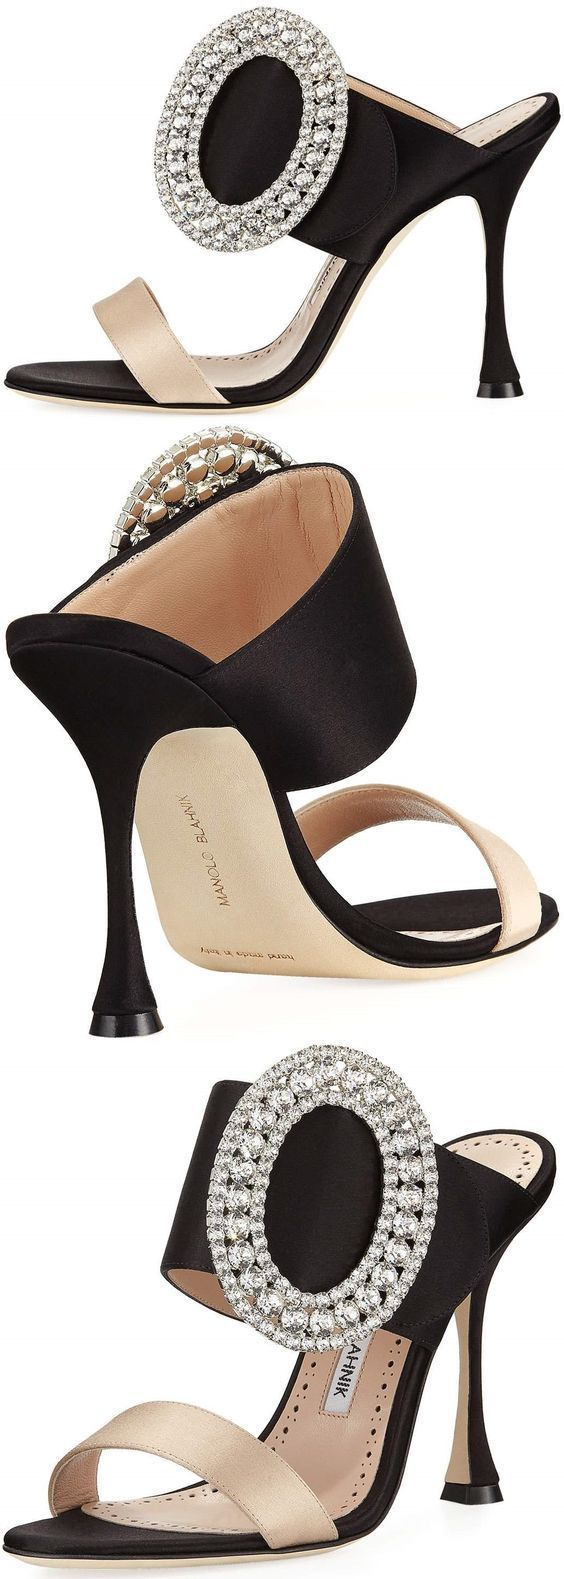 Yule style!! Noel Christmas New Year's Eve!! Party shoes to dance the night away! Black and cream with a glittered oversized buckle! For a Little Black Dress! Manolo Blahnik #manoloblahnikheelsfashion #manoloblahnikheelsproducts